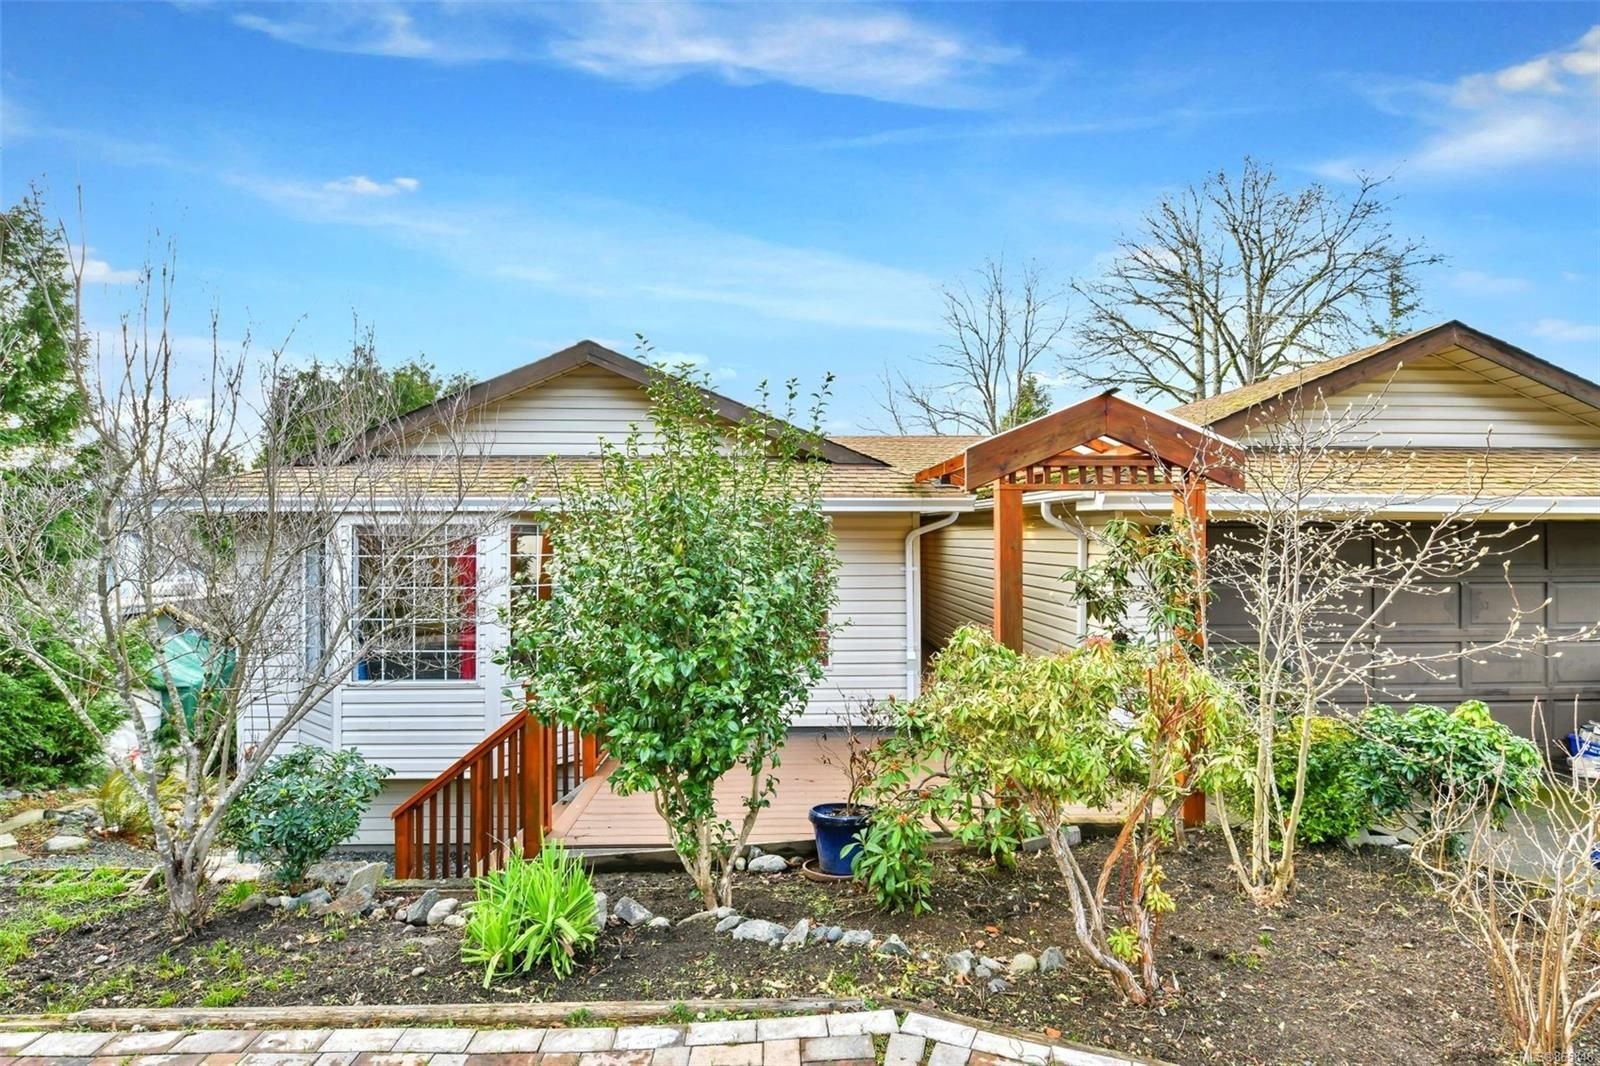 Main Photo: 3280 Jacklin Rd in : La Walfred House for sale (Langford)  : MLS®# 865846